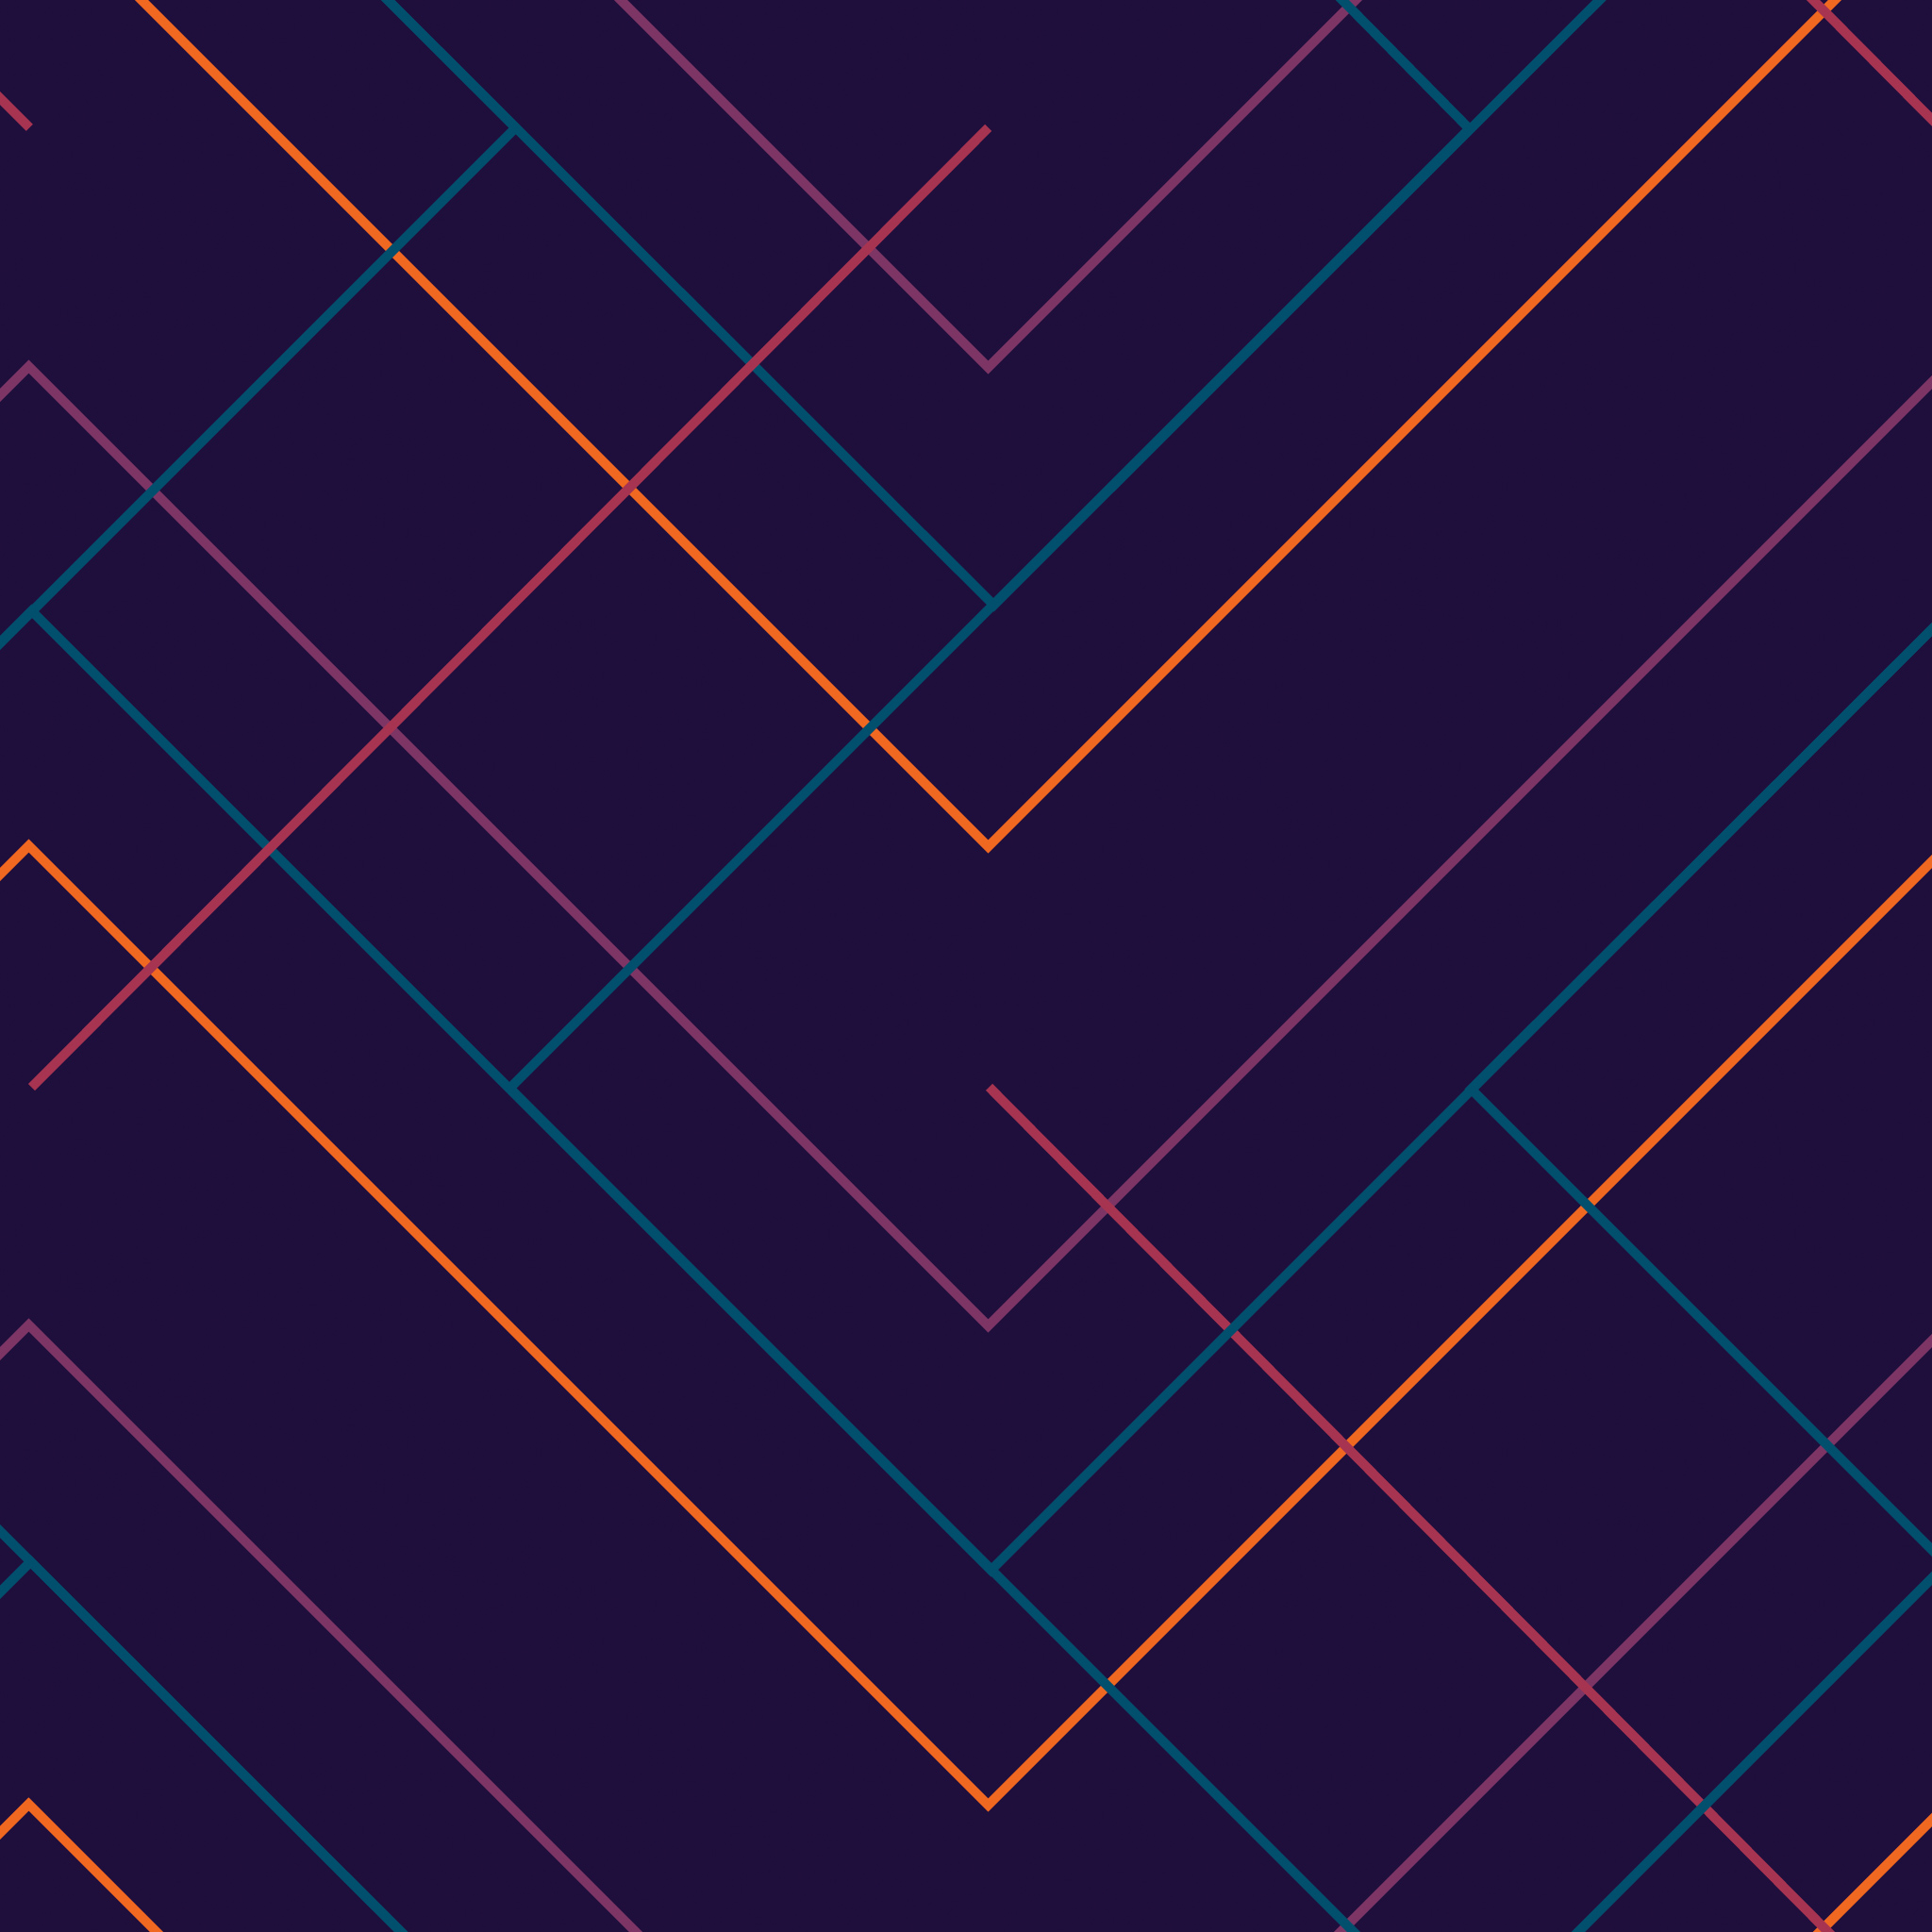 Wallpaper of the Week by Percolate